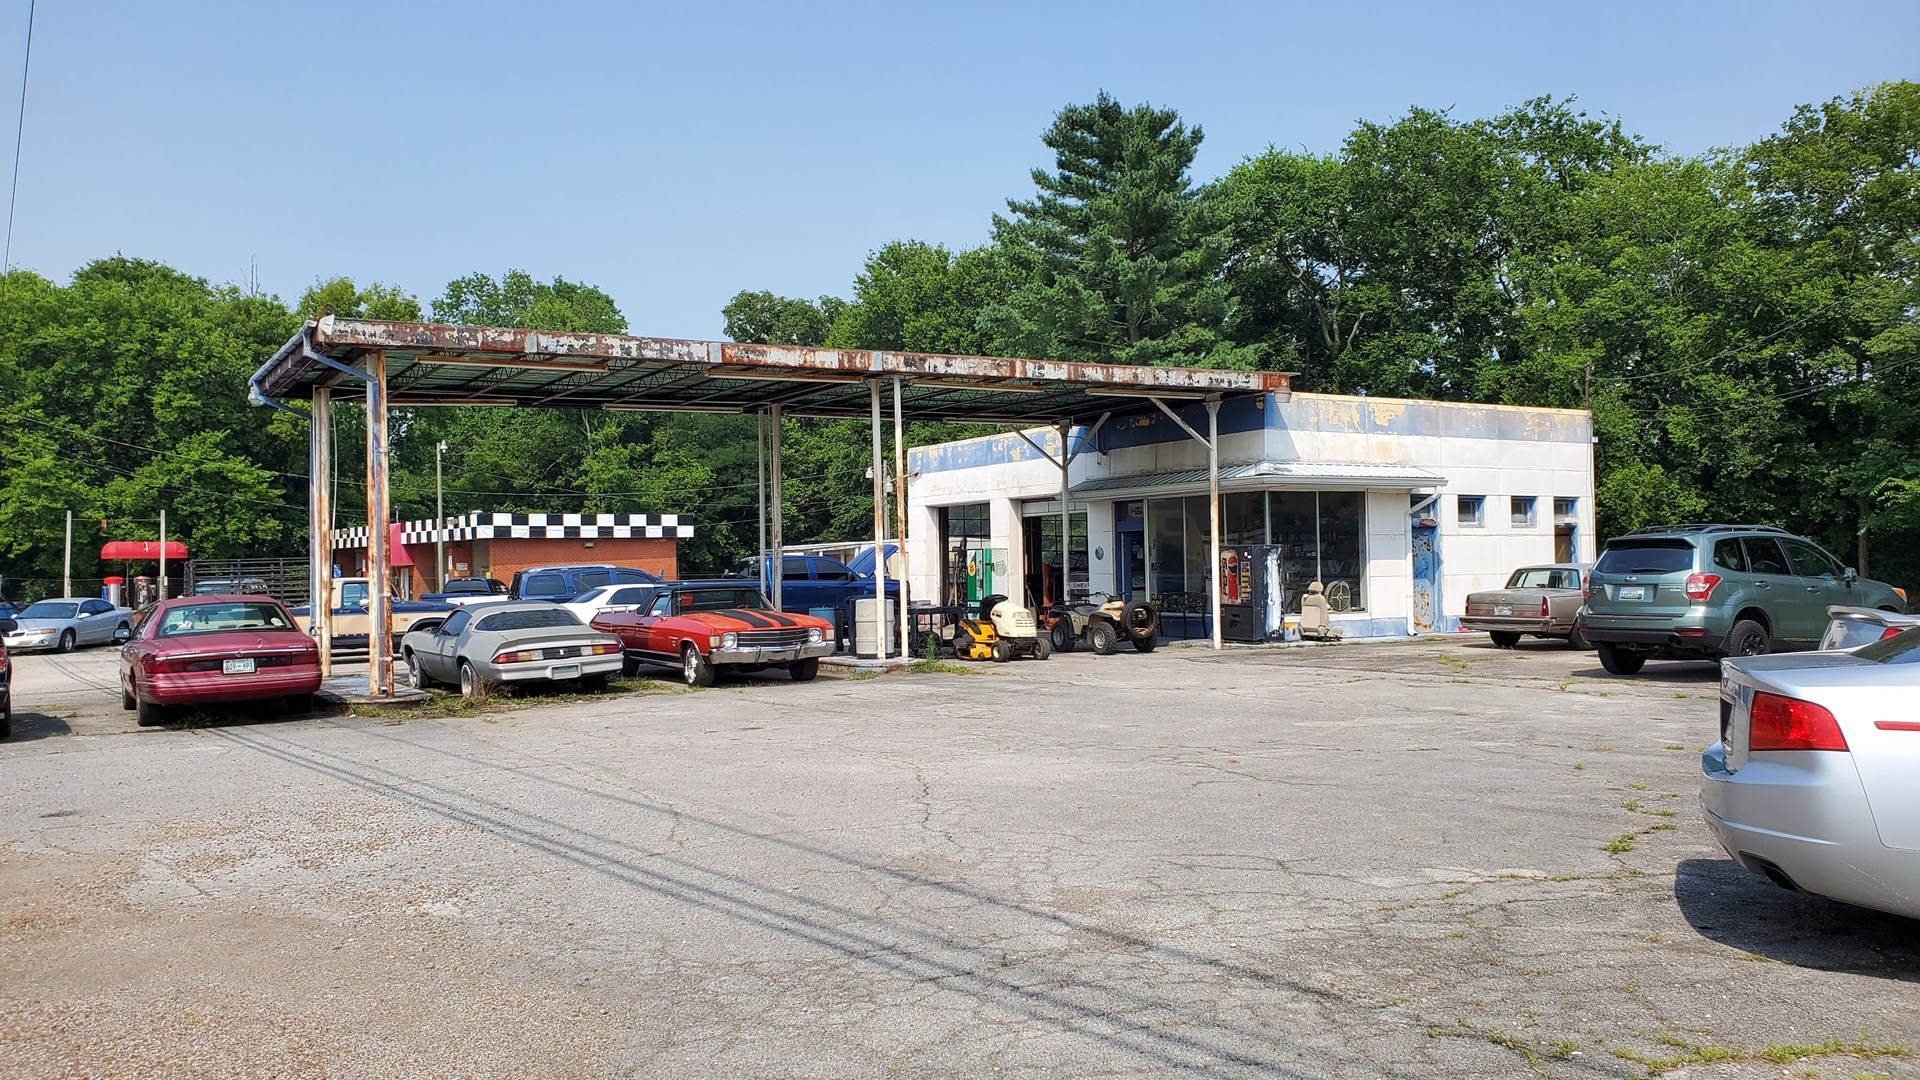 Commercial Property for Sale in Mt. Pleasant, Tennessee